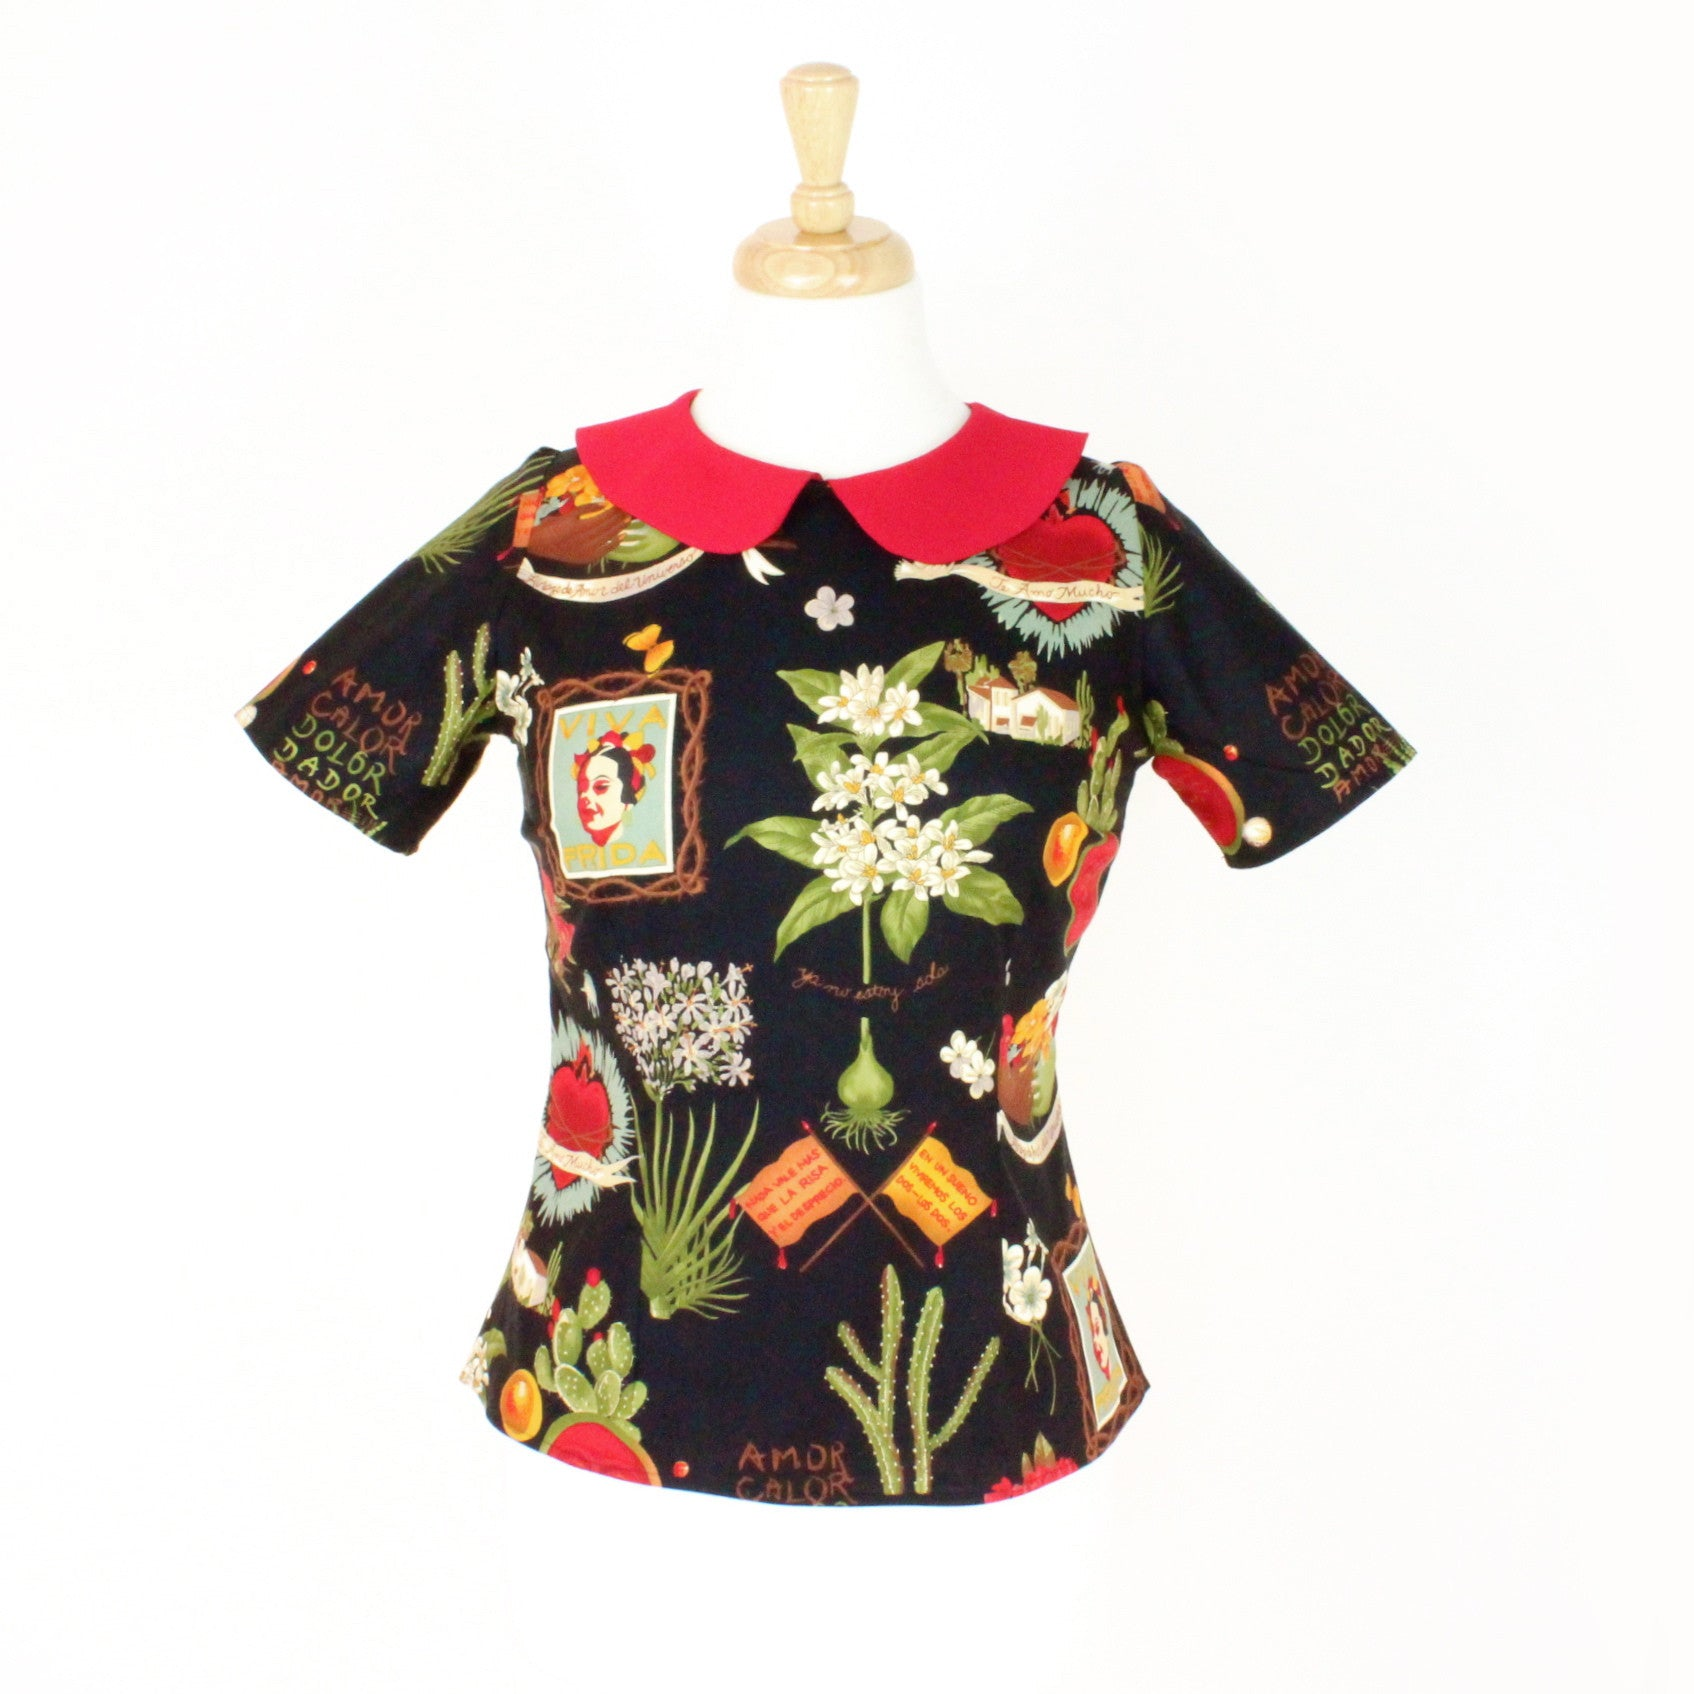 e83a8b60f Load image into Gallery viewer, Frida Kahlo Vintage Inpired Top ...